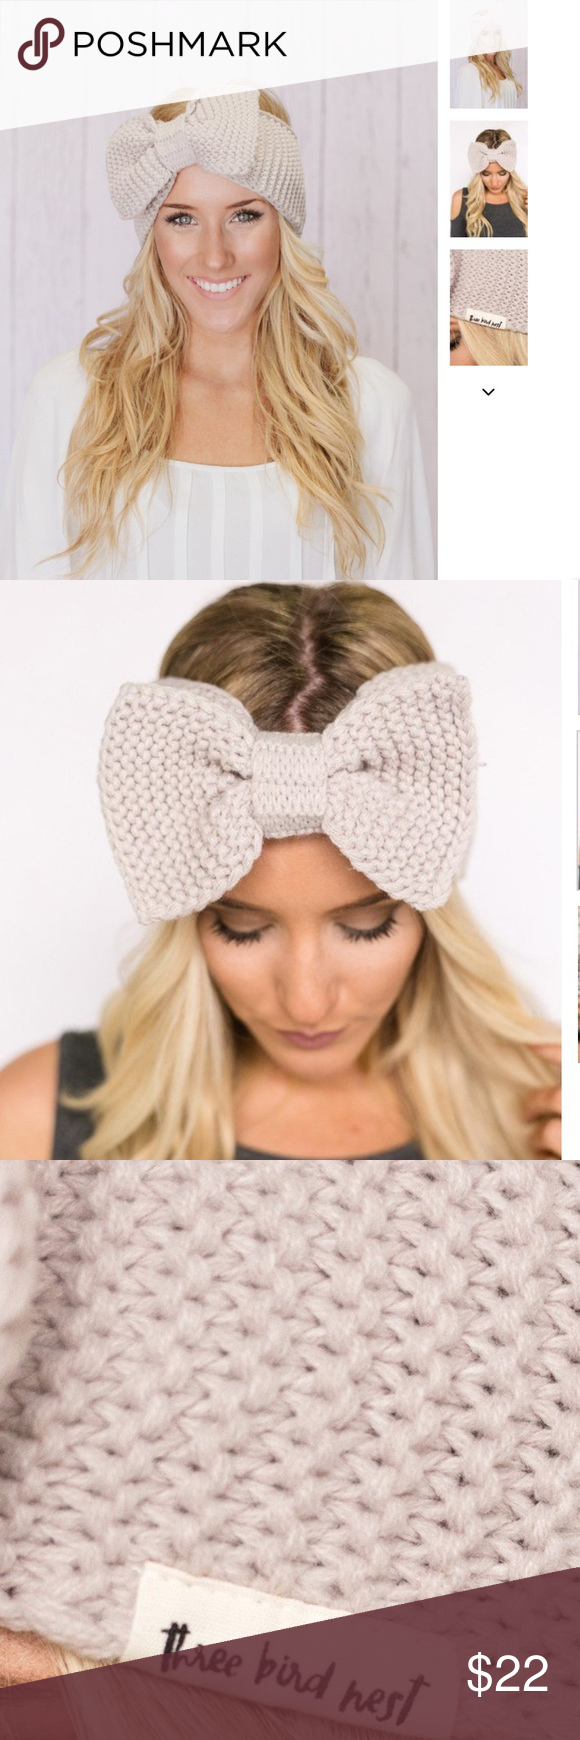 Coming soon! Knitted Bow Headband in Taupe Gorgeous winter essential!  Oversized Knitted Headband is a MUST!  Extra wide band and bow for girly accessorizing. One size fits most. Great neutral color. Three Bird Nest Accessories Hair Accessories